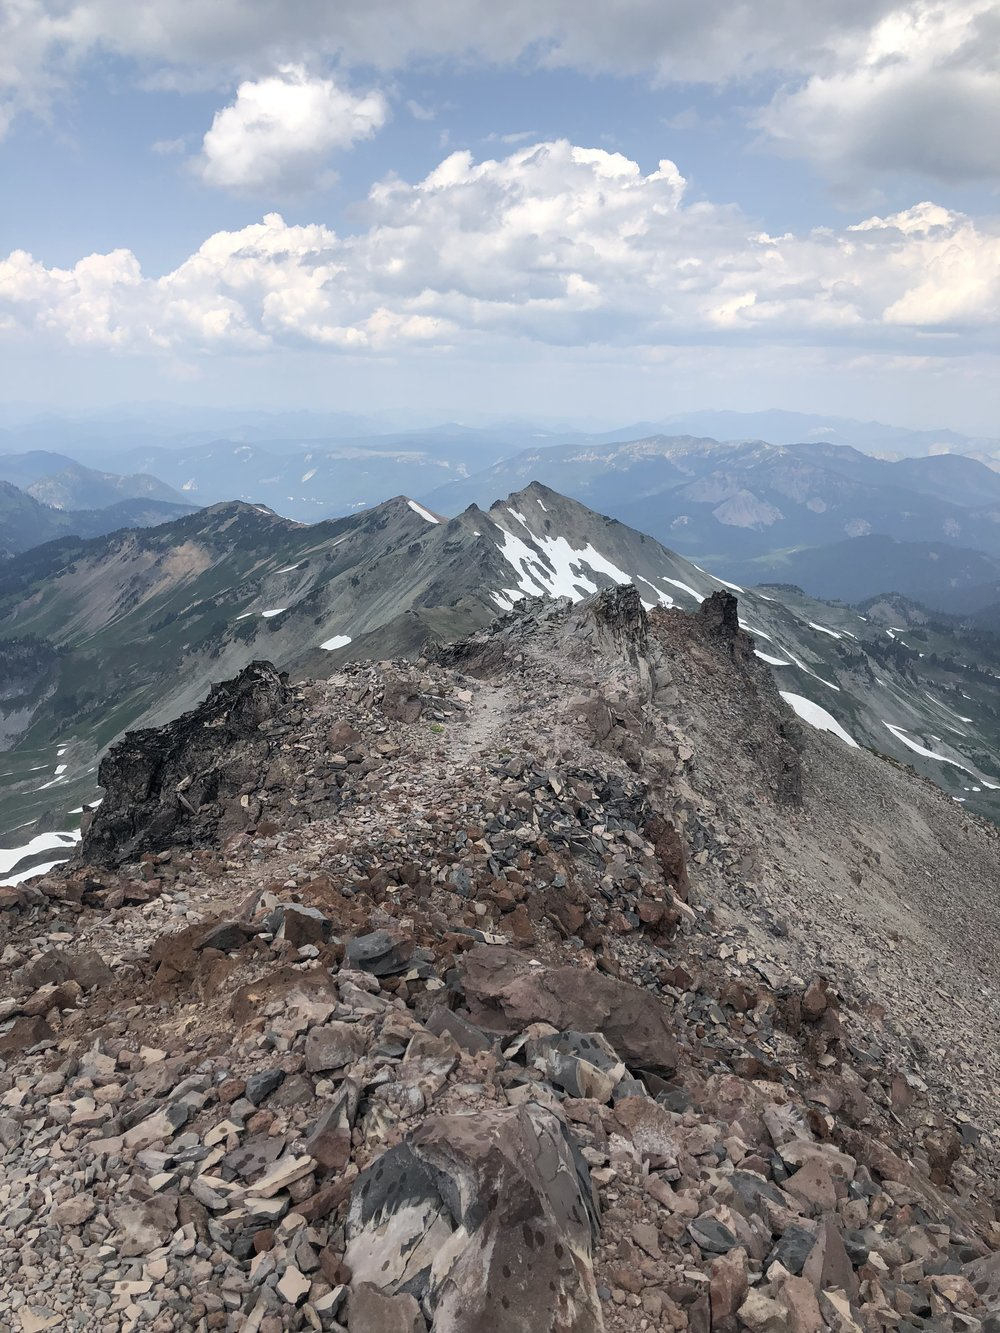 Walking along the spine of the earth – the trail extends all along the ridge here for several miles